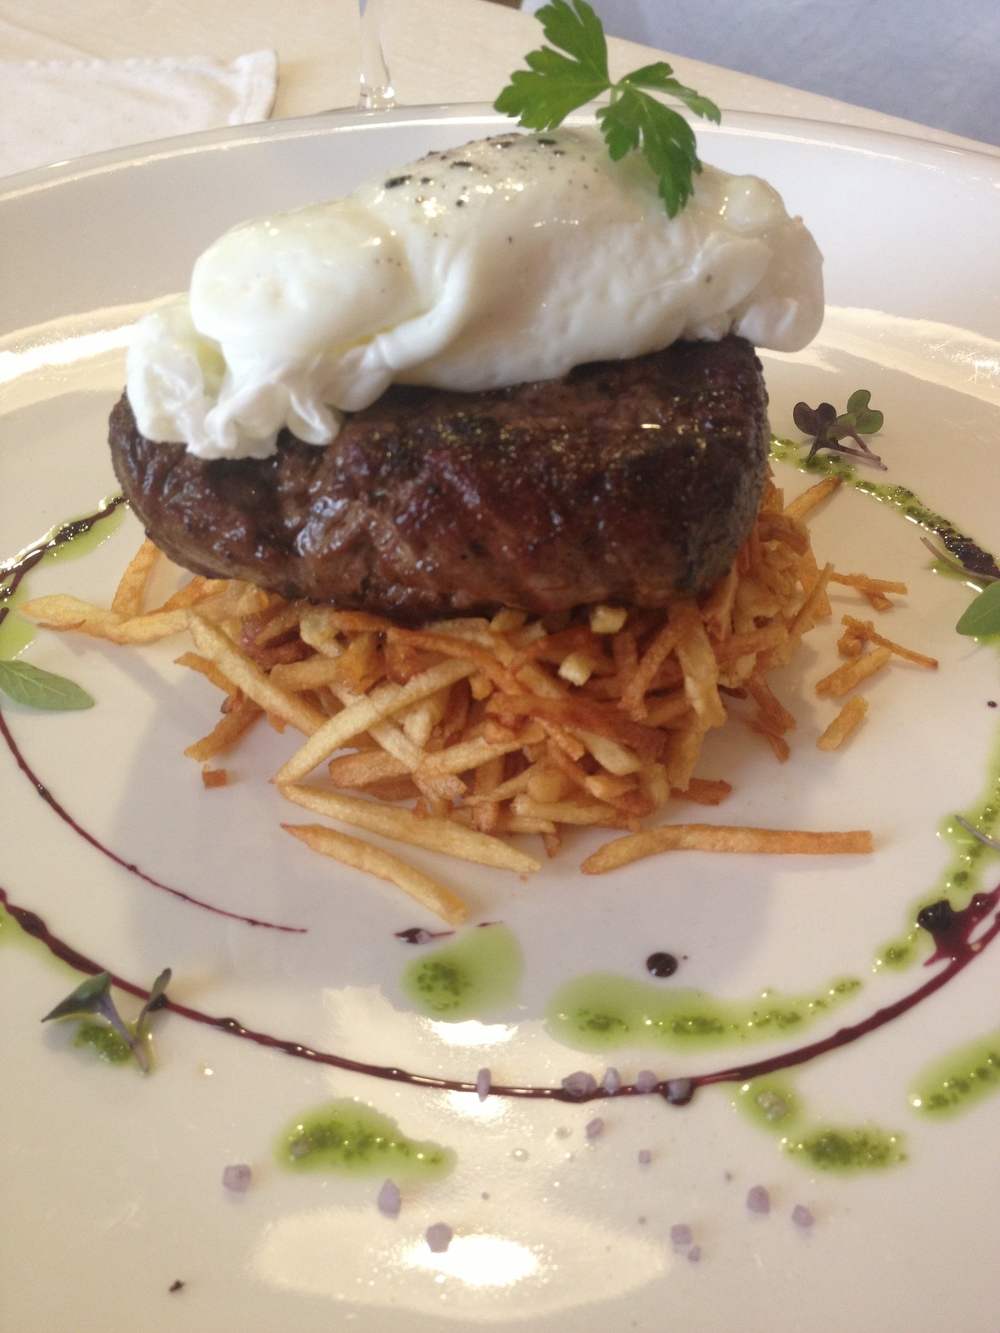 Steak with shoestring fries, Hungarikum Bisztro, Budapest